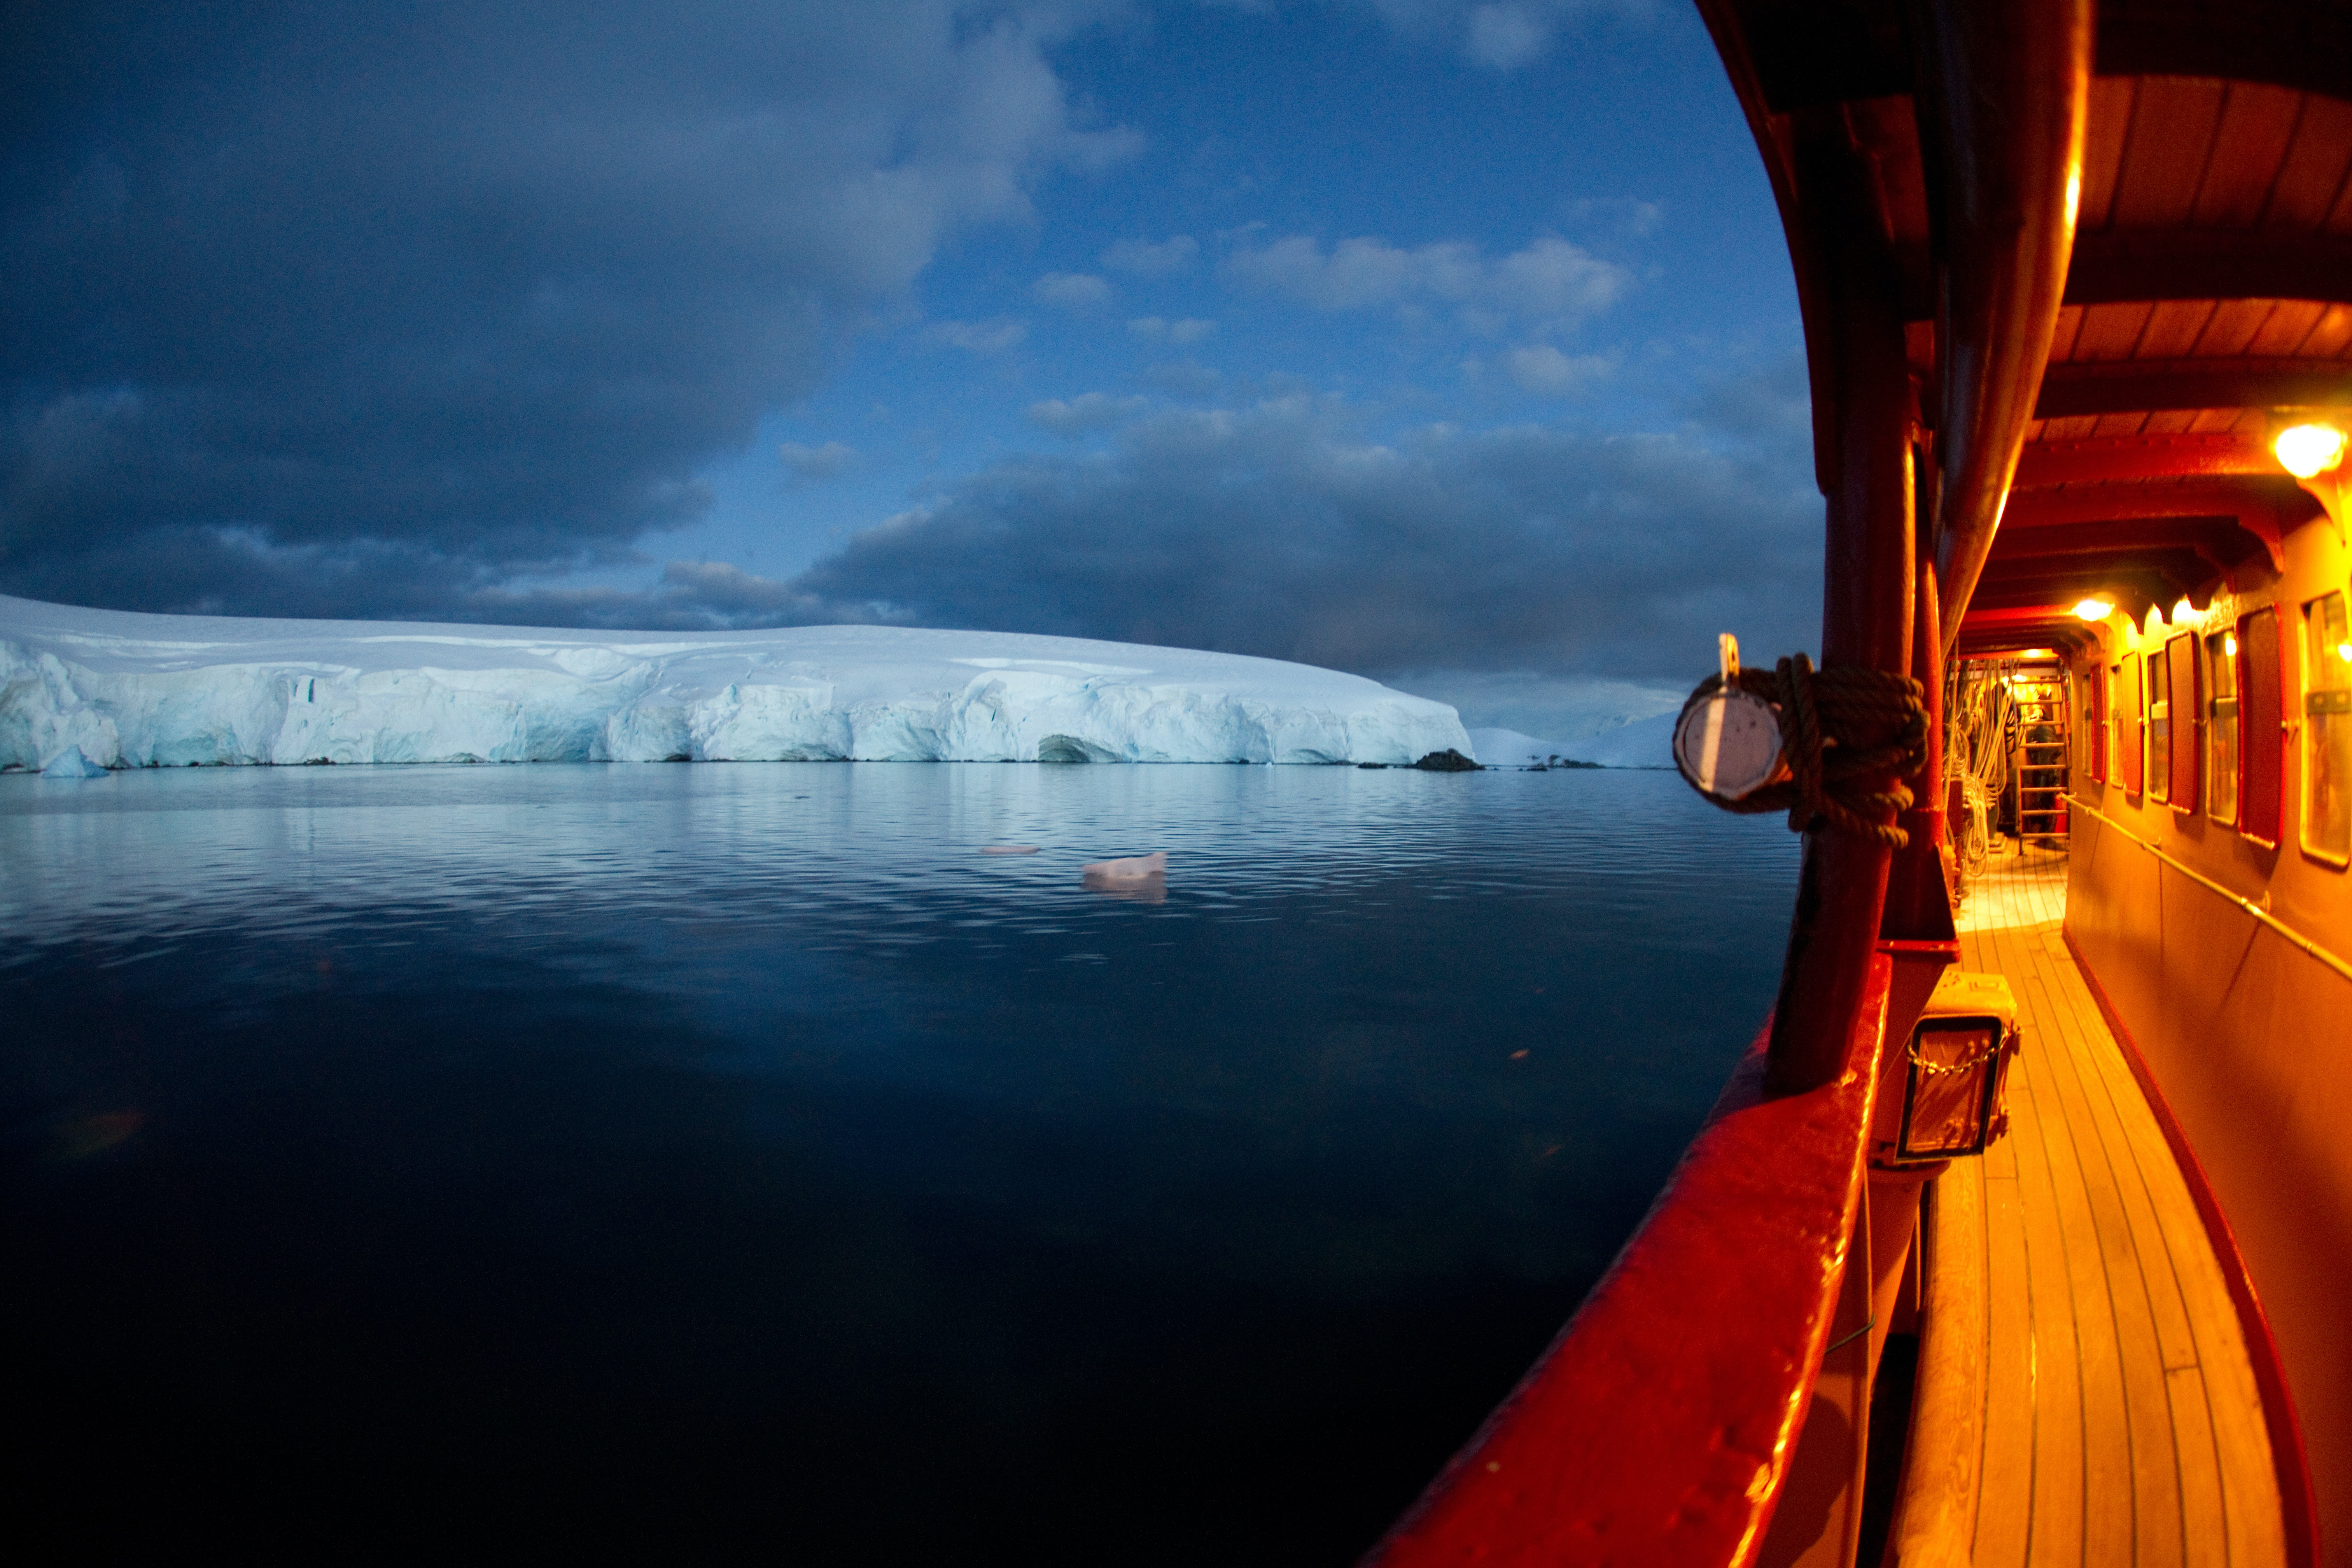 ship floating on ocean heading to ice burg